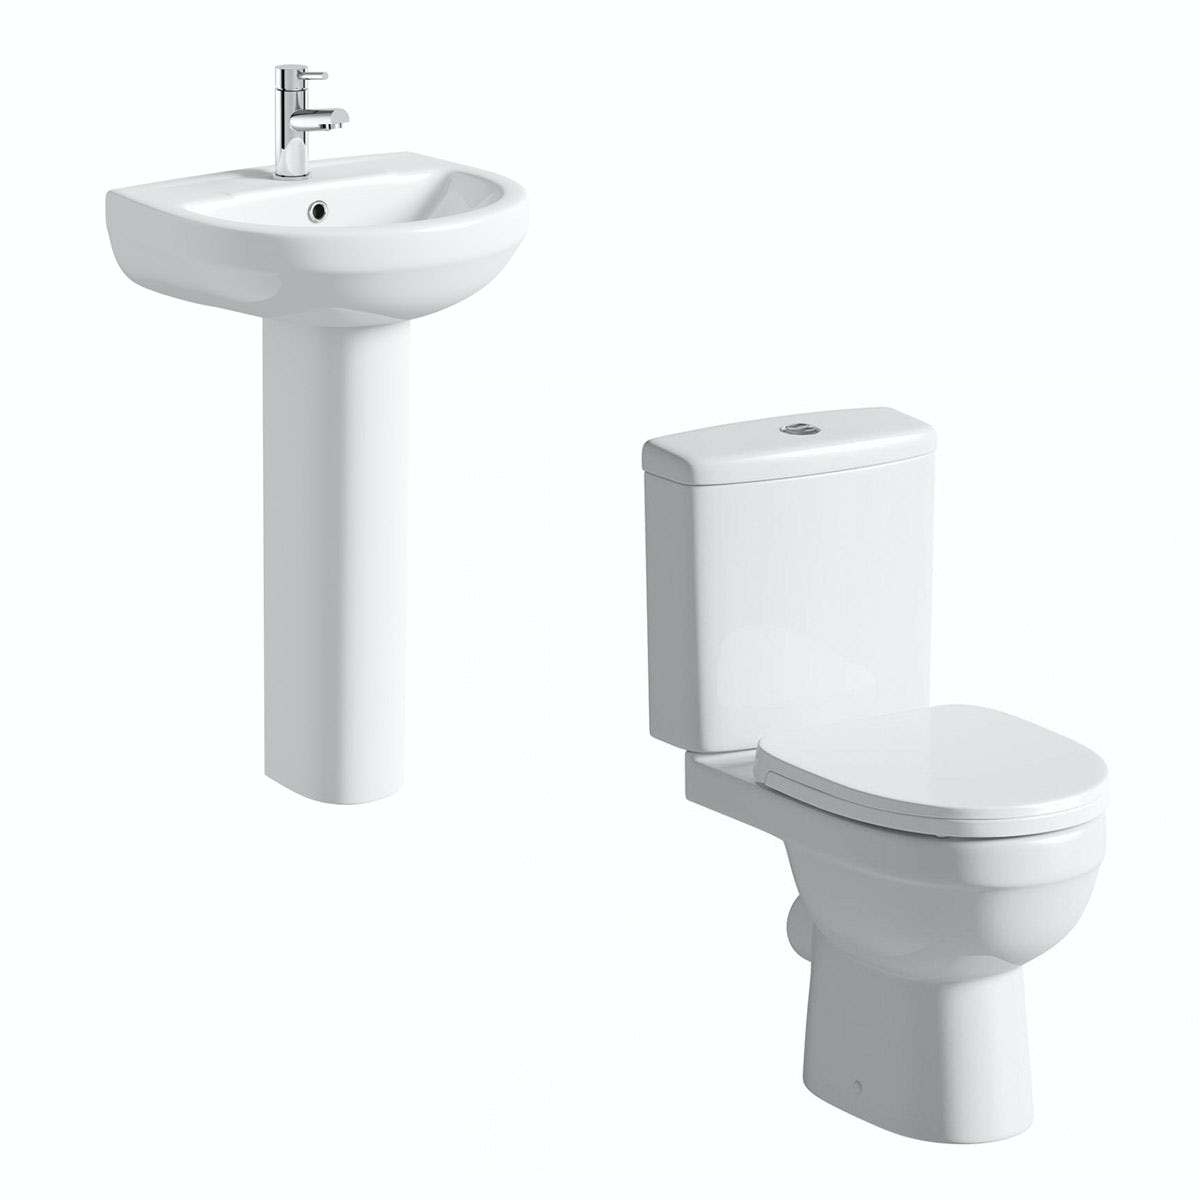 Refit bathroom cost - Orchard Eden Close Coupled Toilet Suite With Full Pedestal Basin 550mm